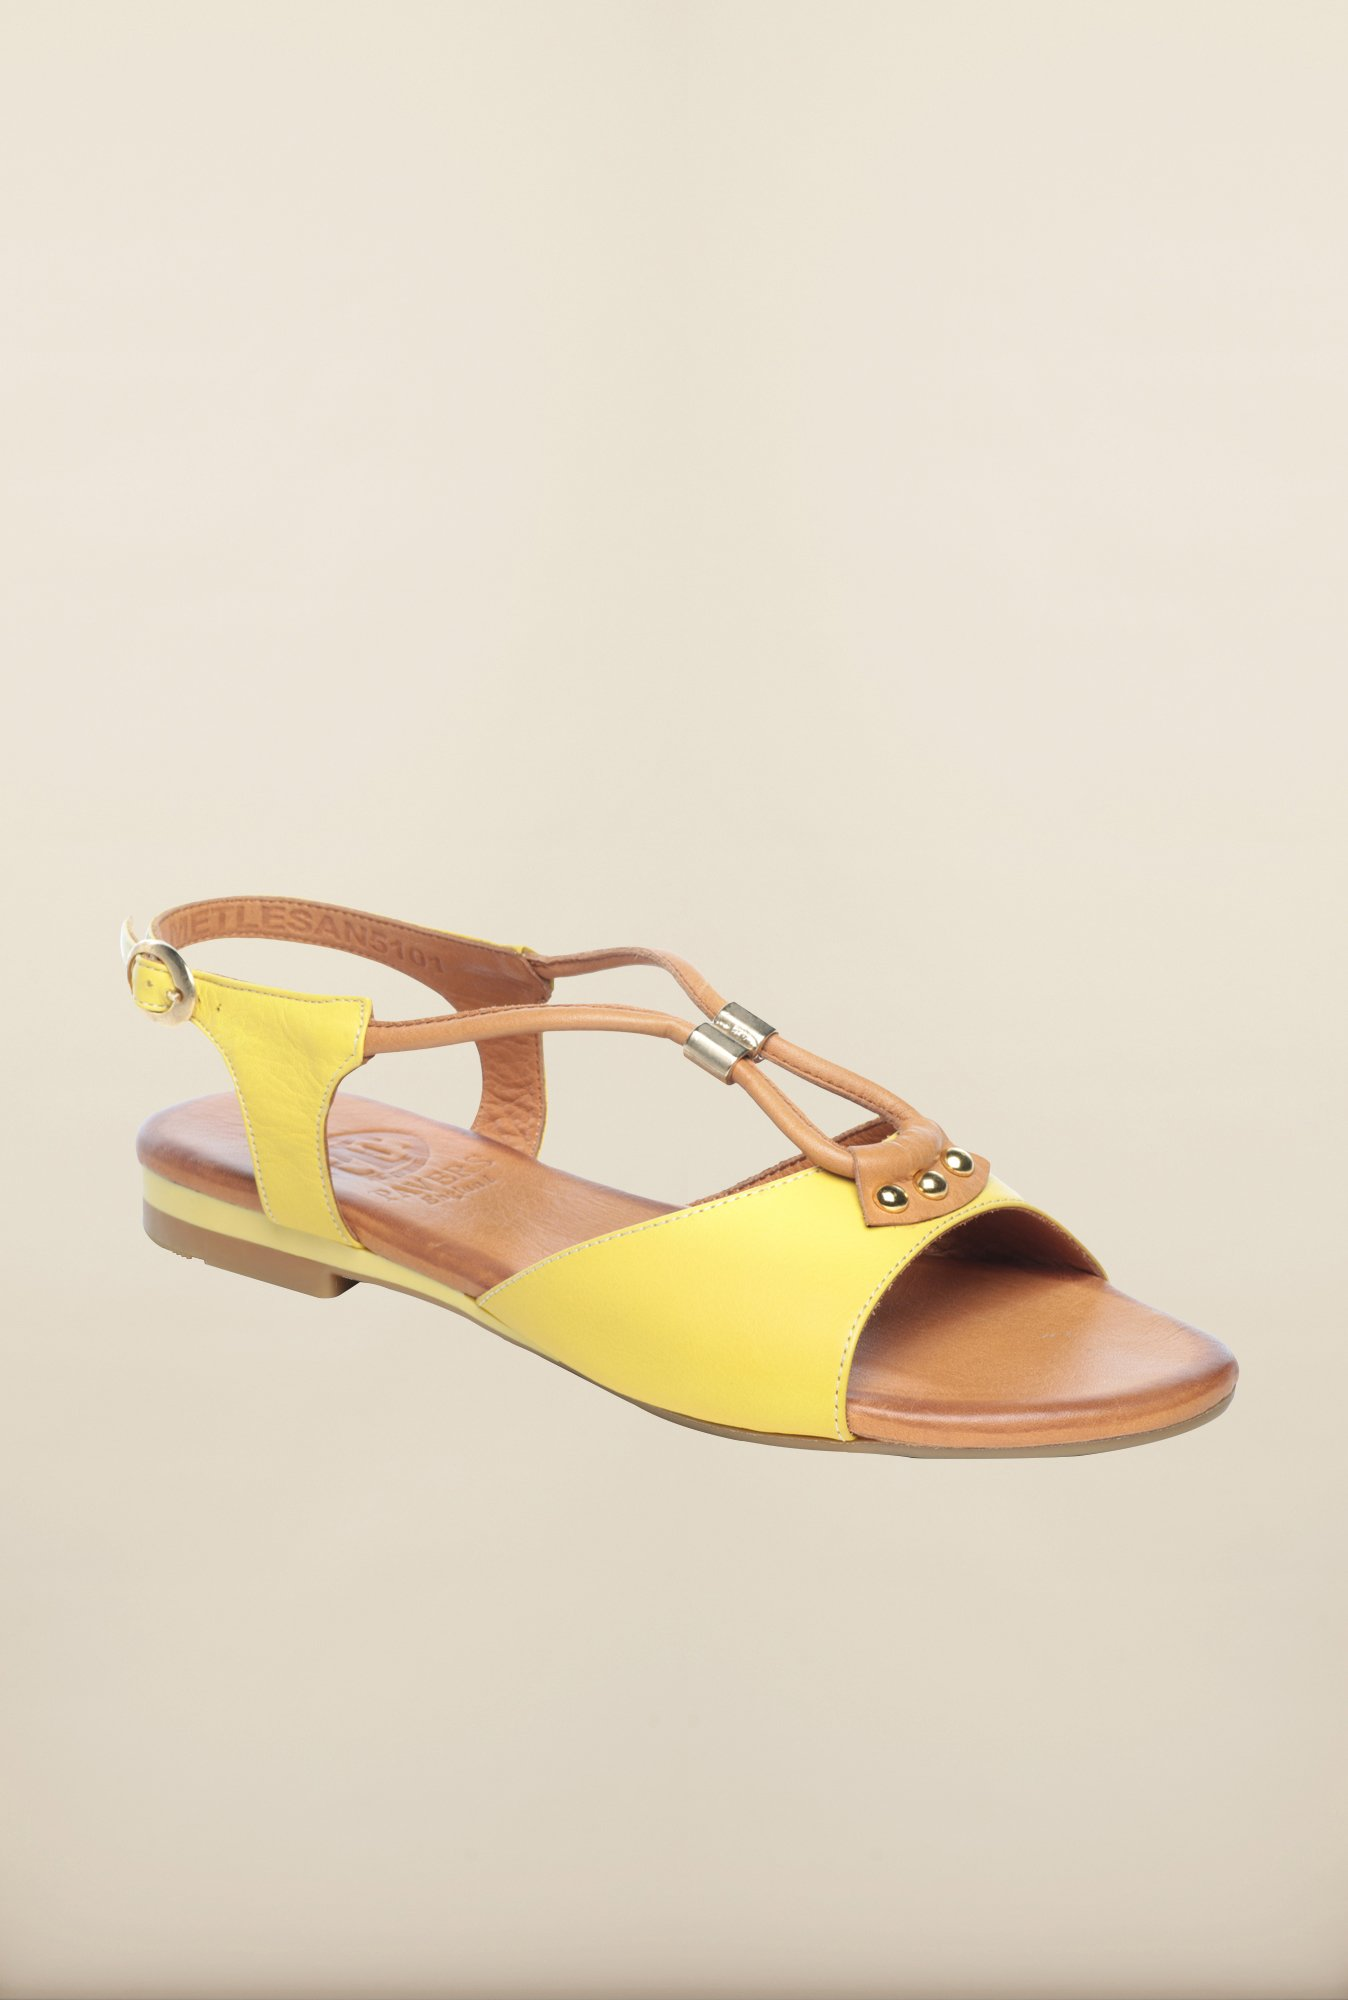 Pavers England Yellow & Beige Flat Sandals